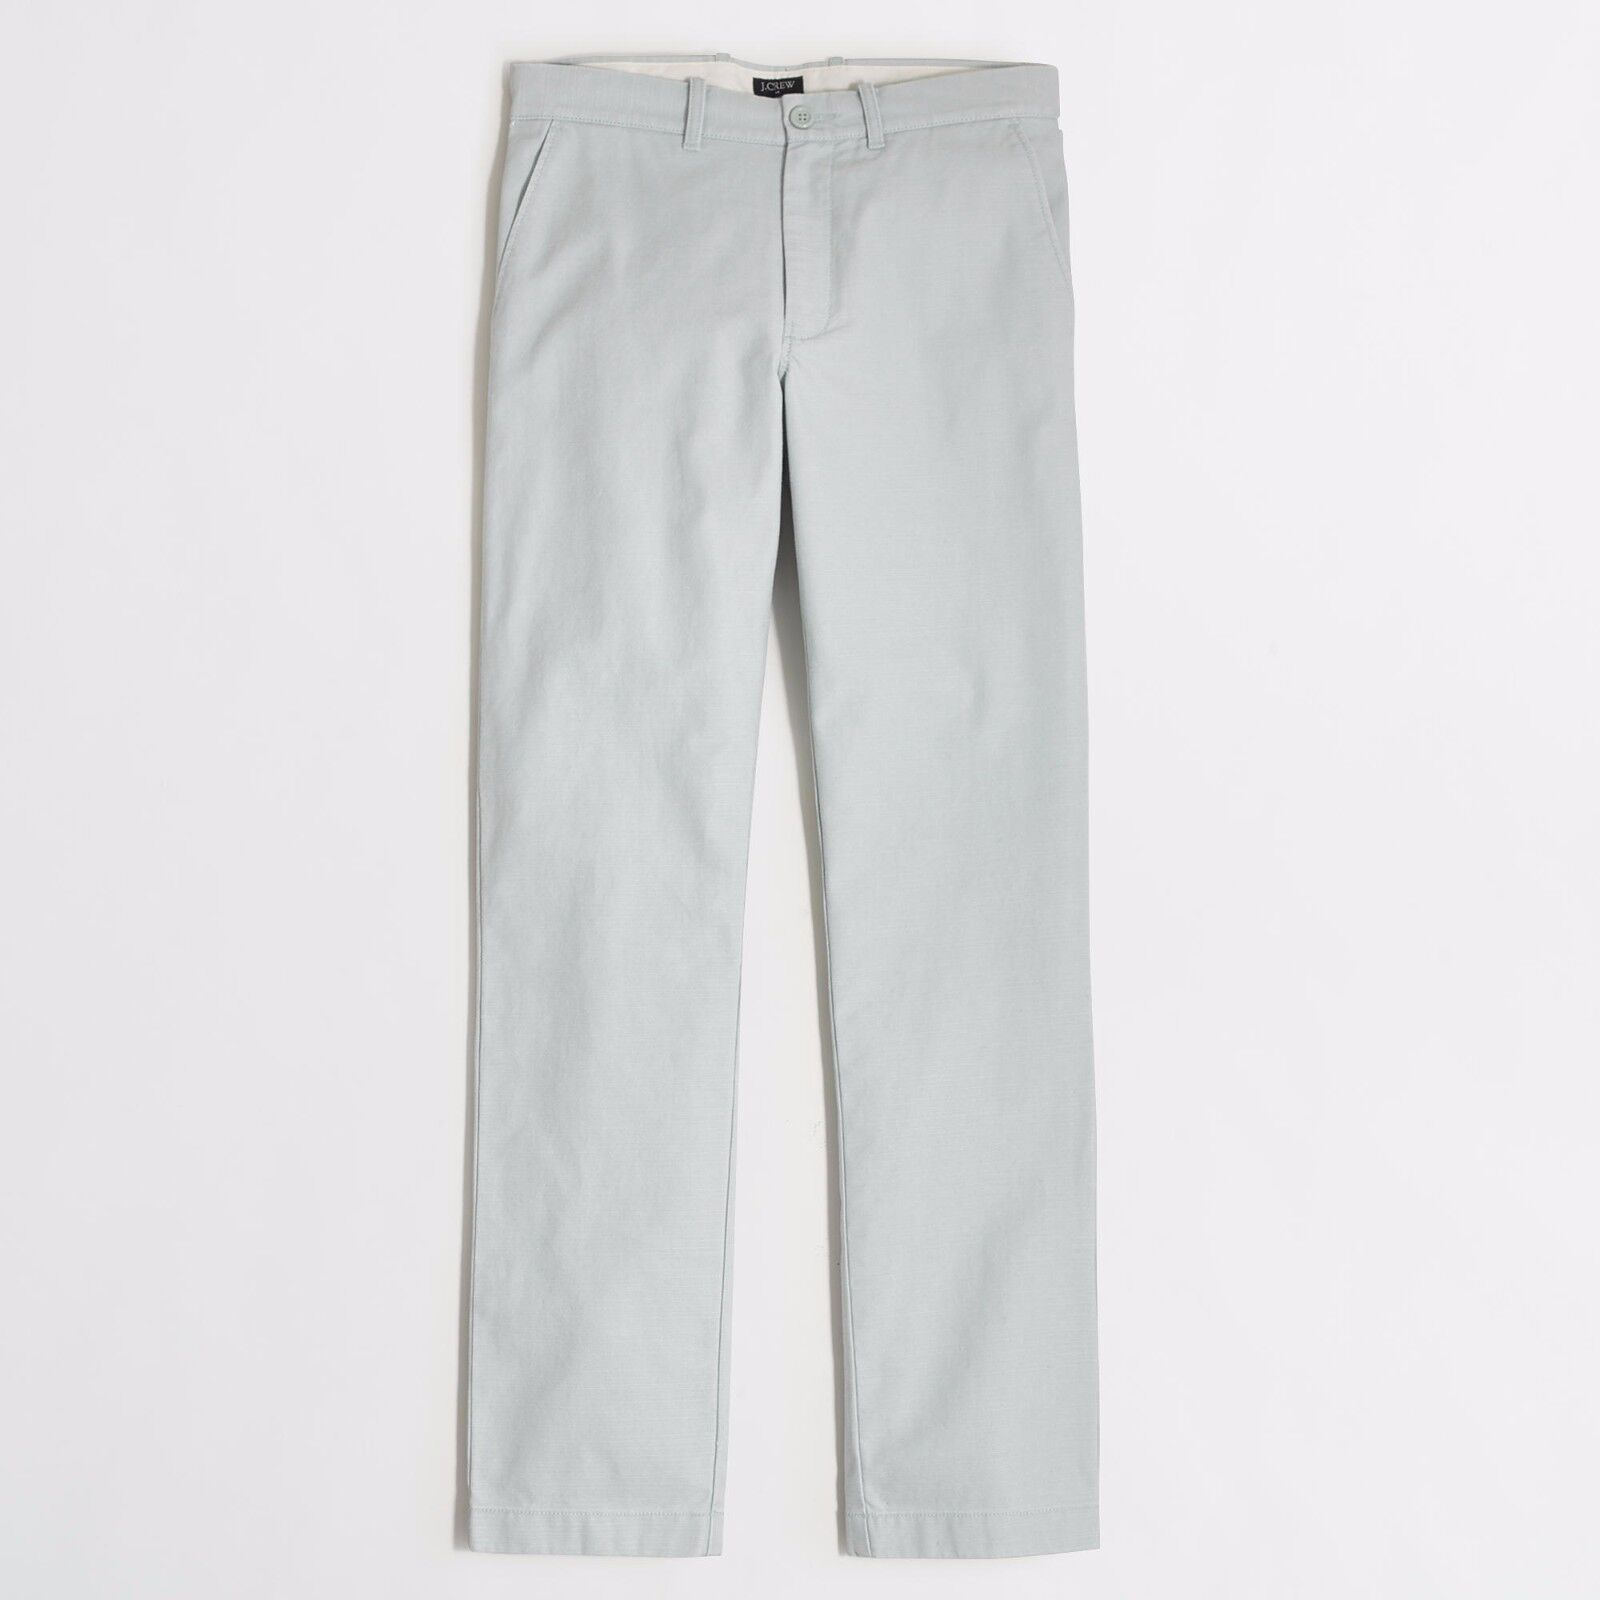 BRAND NEW WITH TAGS J. CREW SUTTON TEXTURED COTTON PANT   31x32